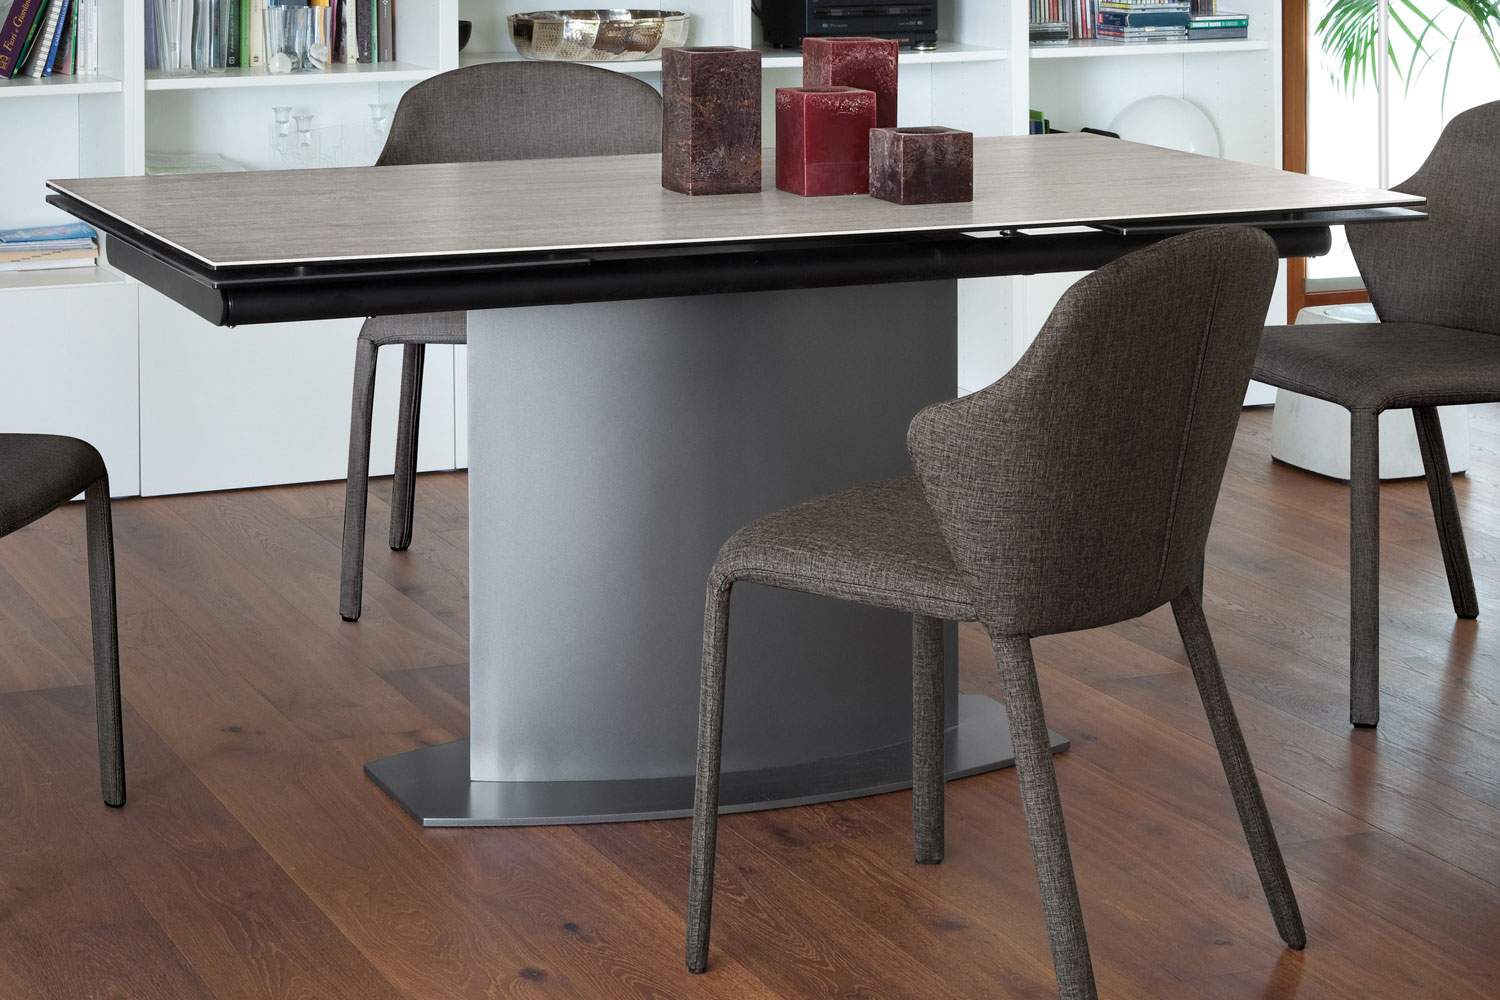 Discovery Dining Table Grey Ireland : DISCLTOGOCLS from www.harveynorman.ie size 1500 x 1000 jpeg 250kB